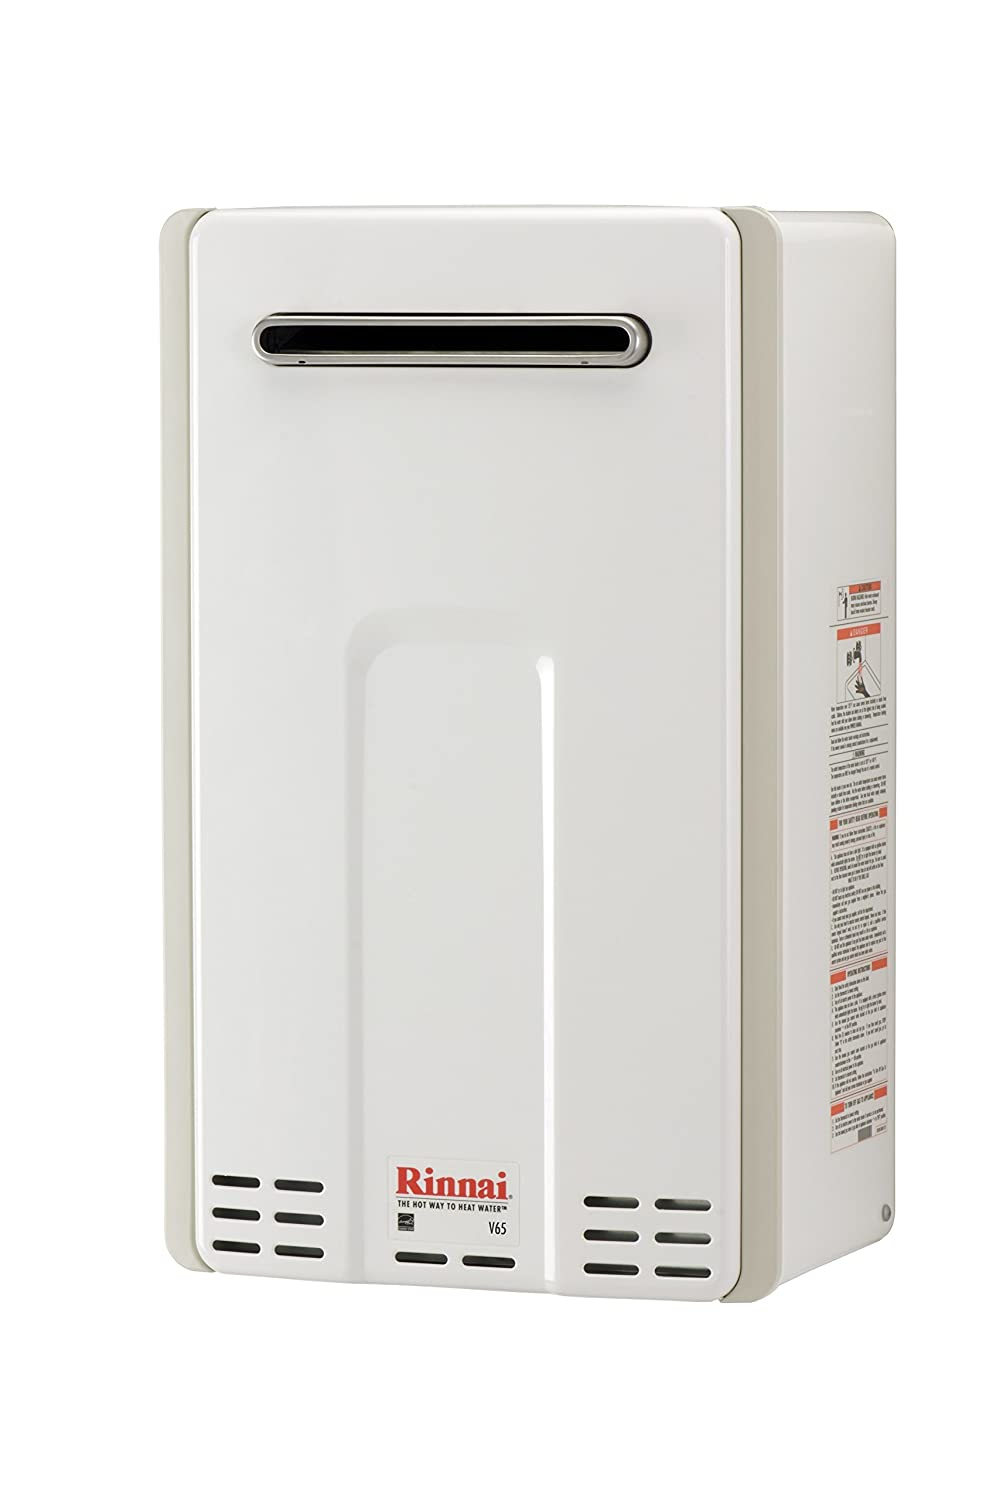 Rinnai V65EP 6.6 GPM Outdoor Low NOx Tankless Propane Water Heater - -  Amazon.com